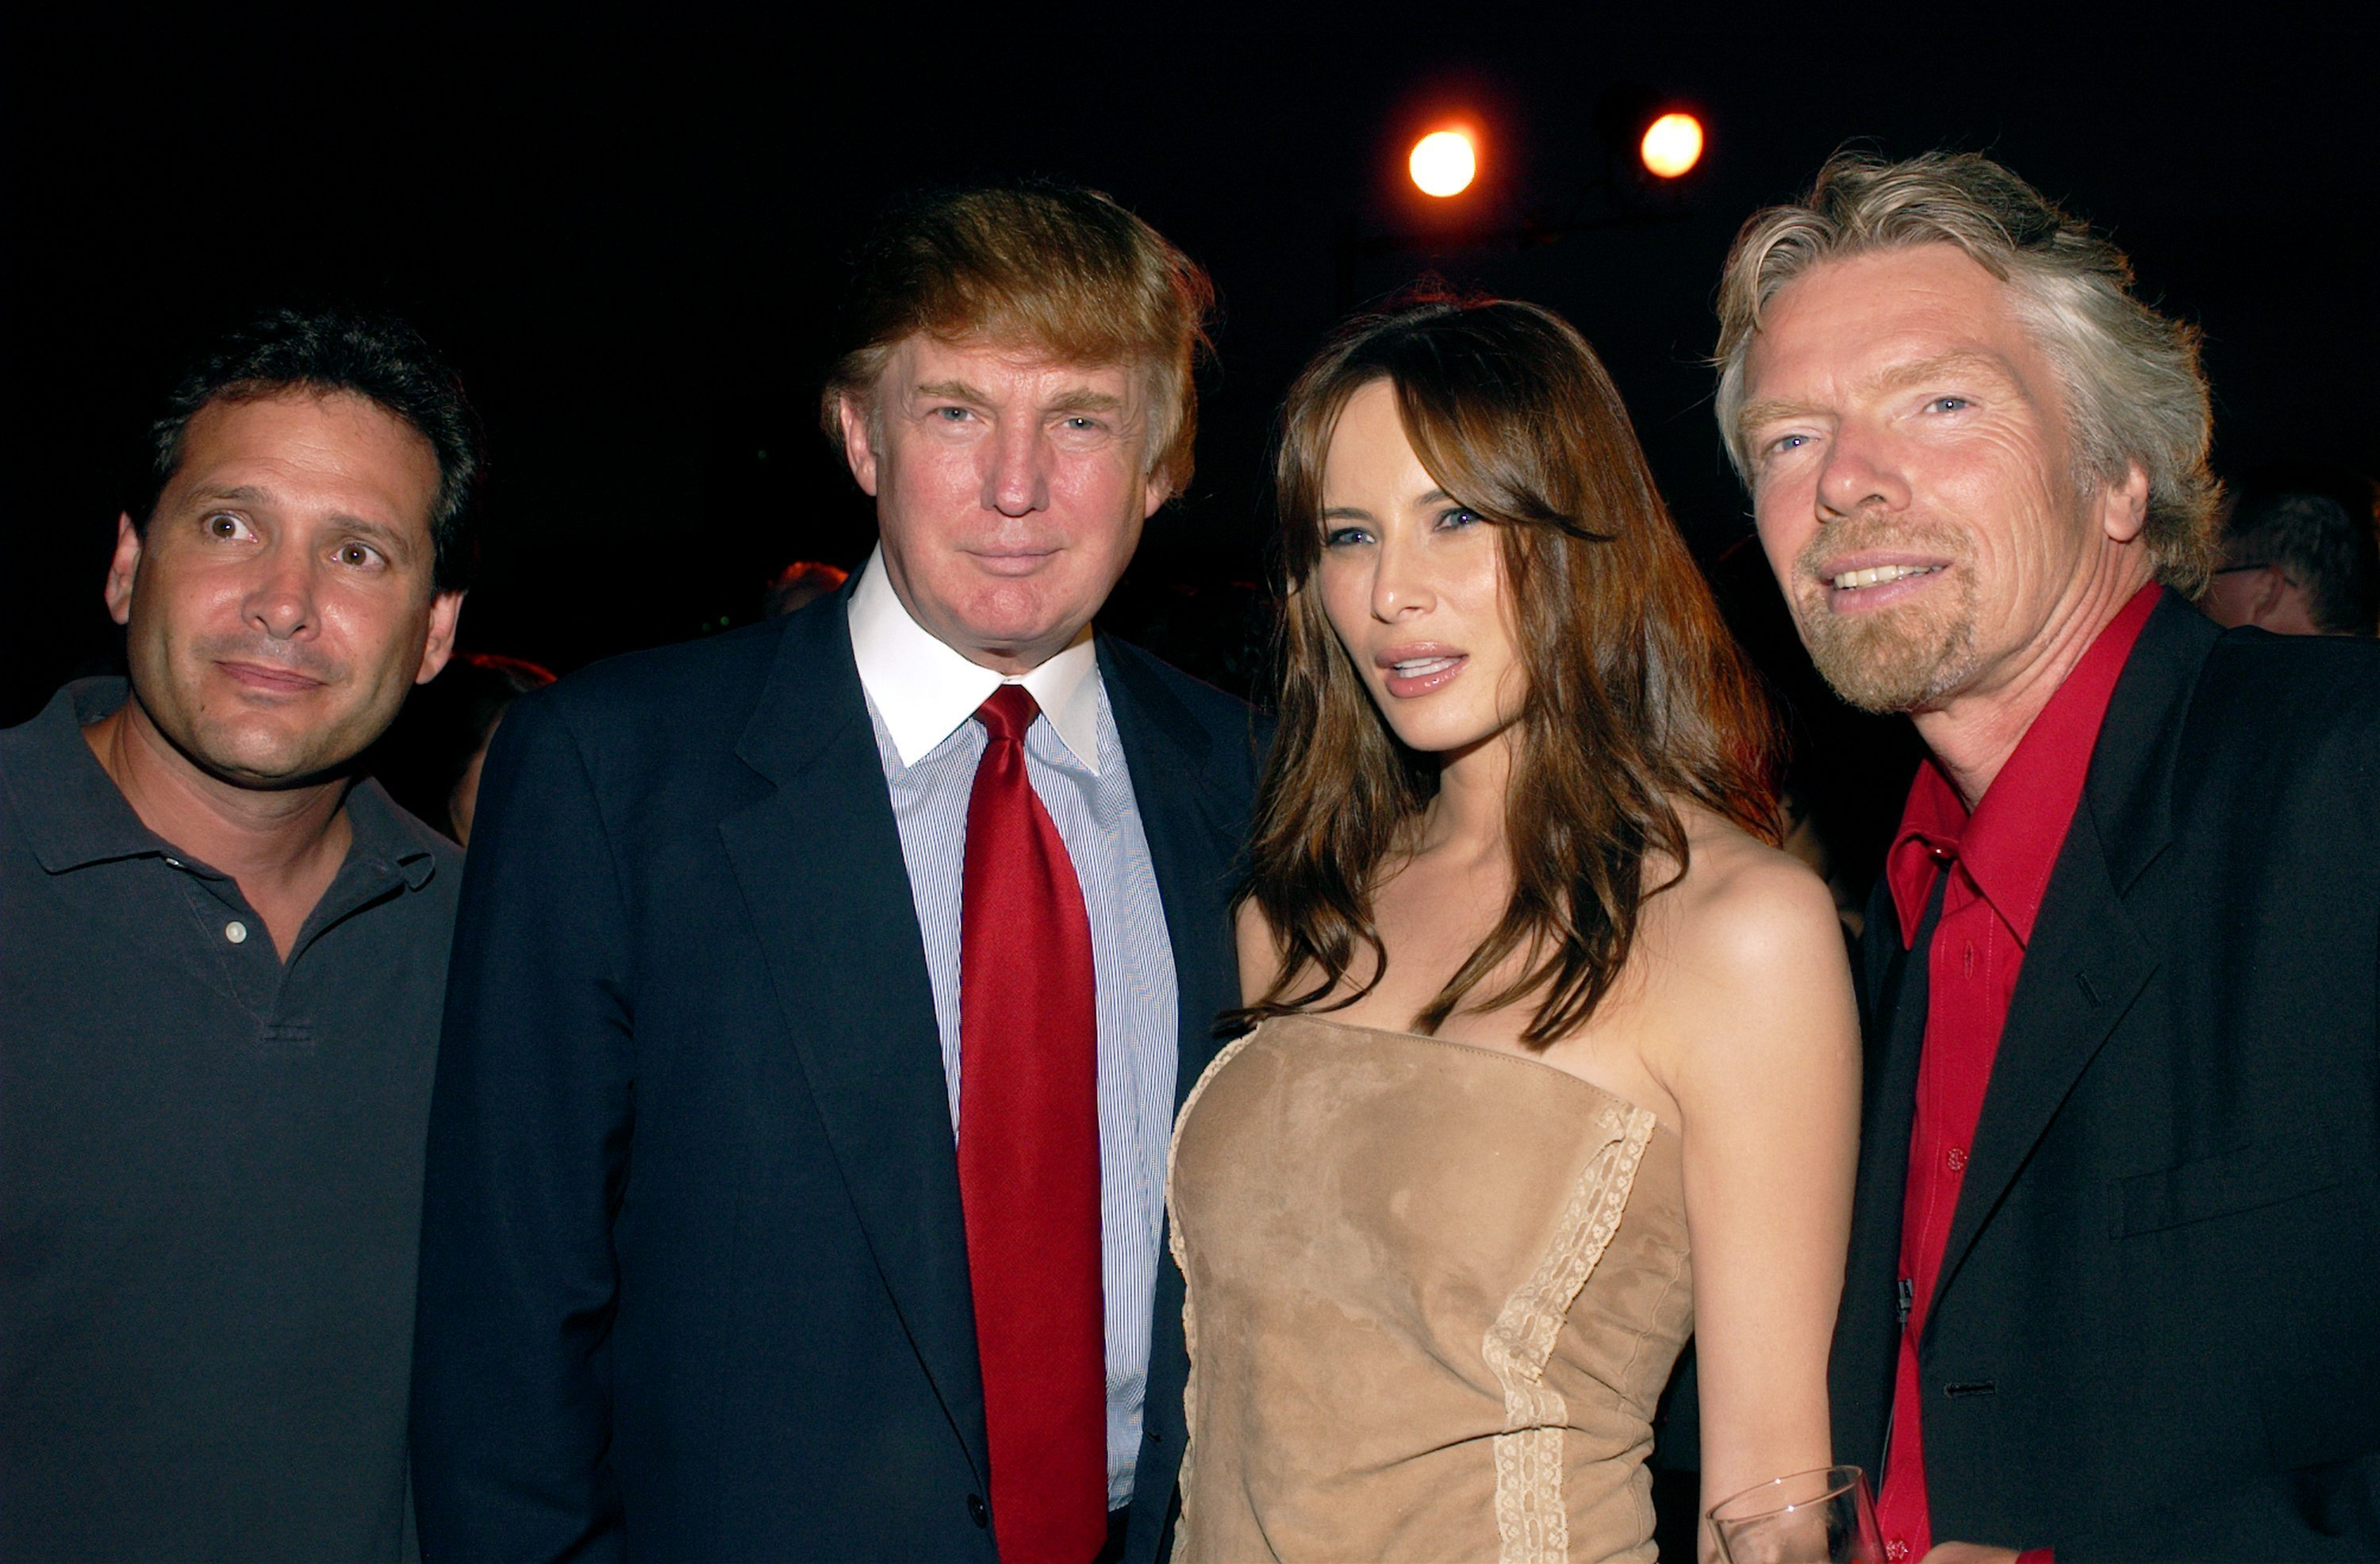 Richard Branson: 'Trump's Temperament Is Irrational, Aggressive and He Lacks Informed Ideas'